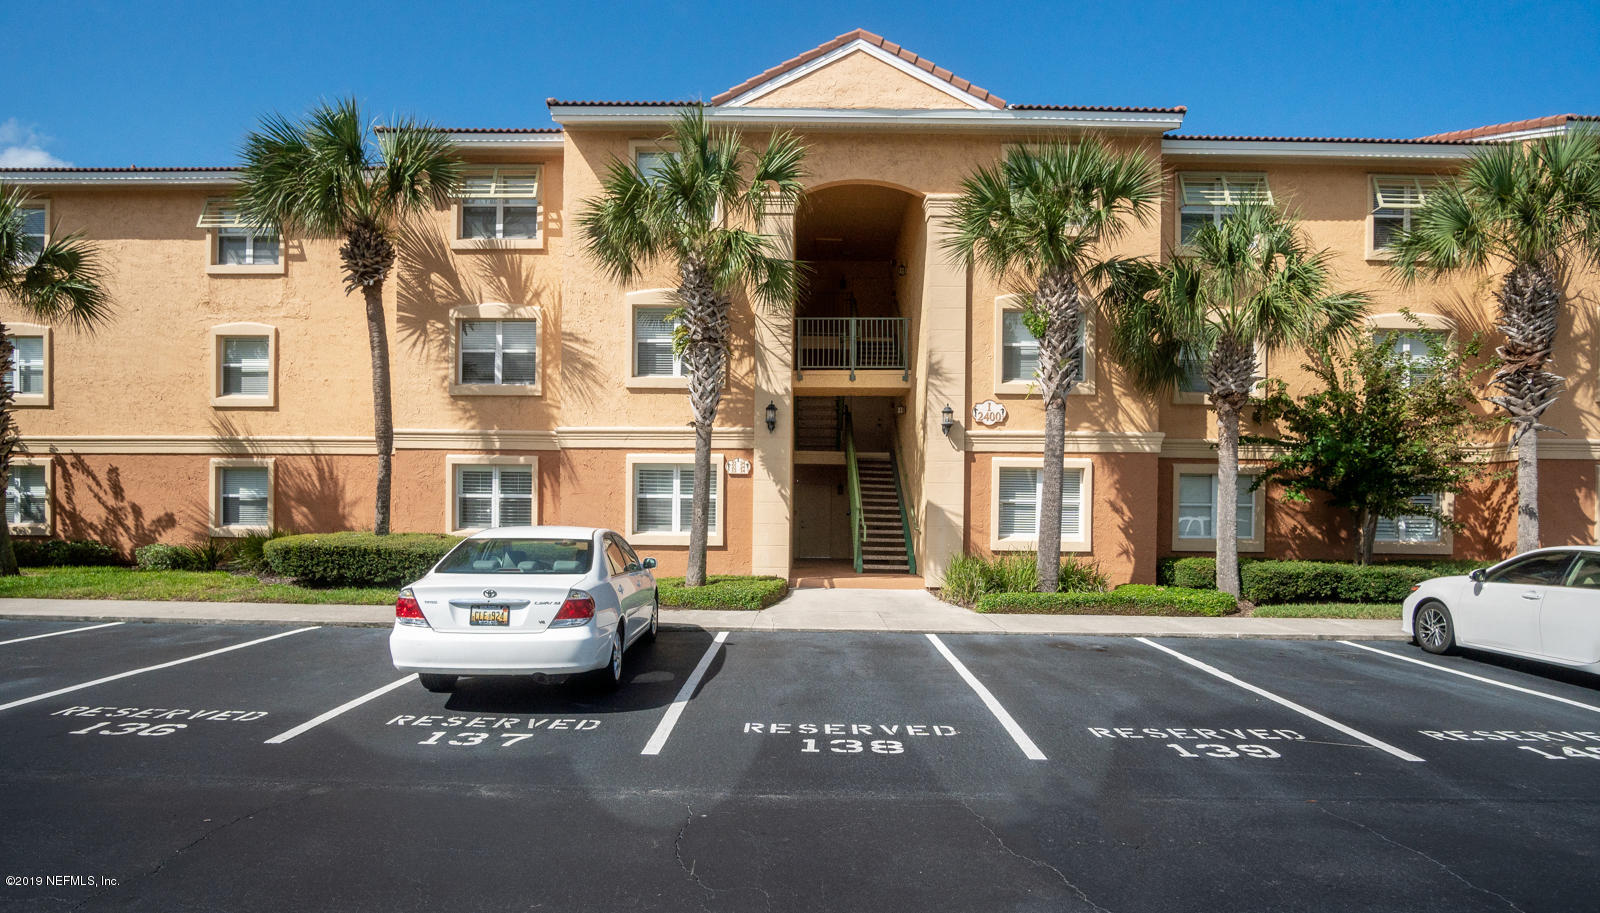 2400 1ST- JACKSONVILLE BEACH- FLORIDA 32250, 2 Bedrooms Bedrooms, ,2 BathroomsBathrooms,Condo,For sale,1ST,1018045